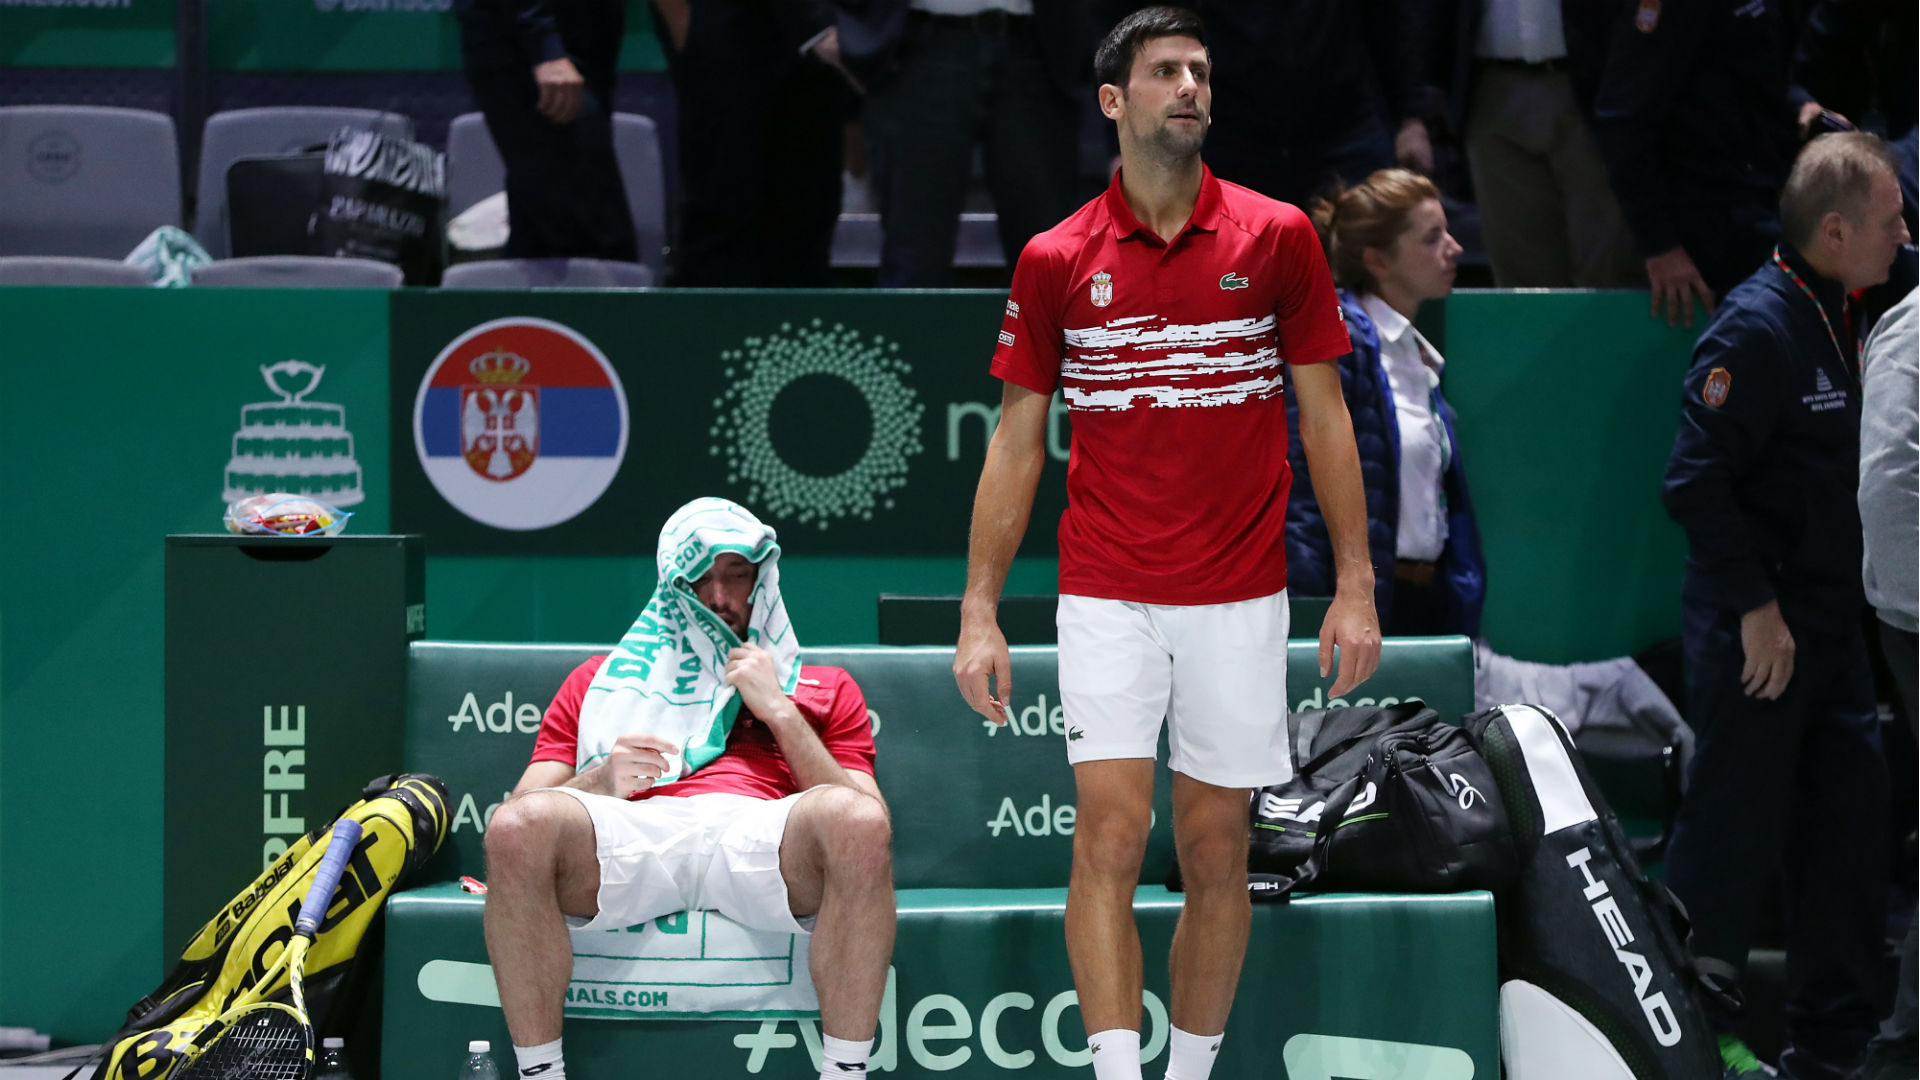 Tearful Troicki says sorry as Serbia suffer heartbreaking Davis Cup defeat